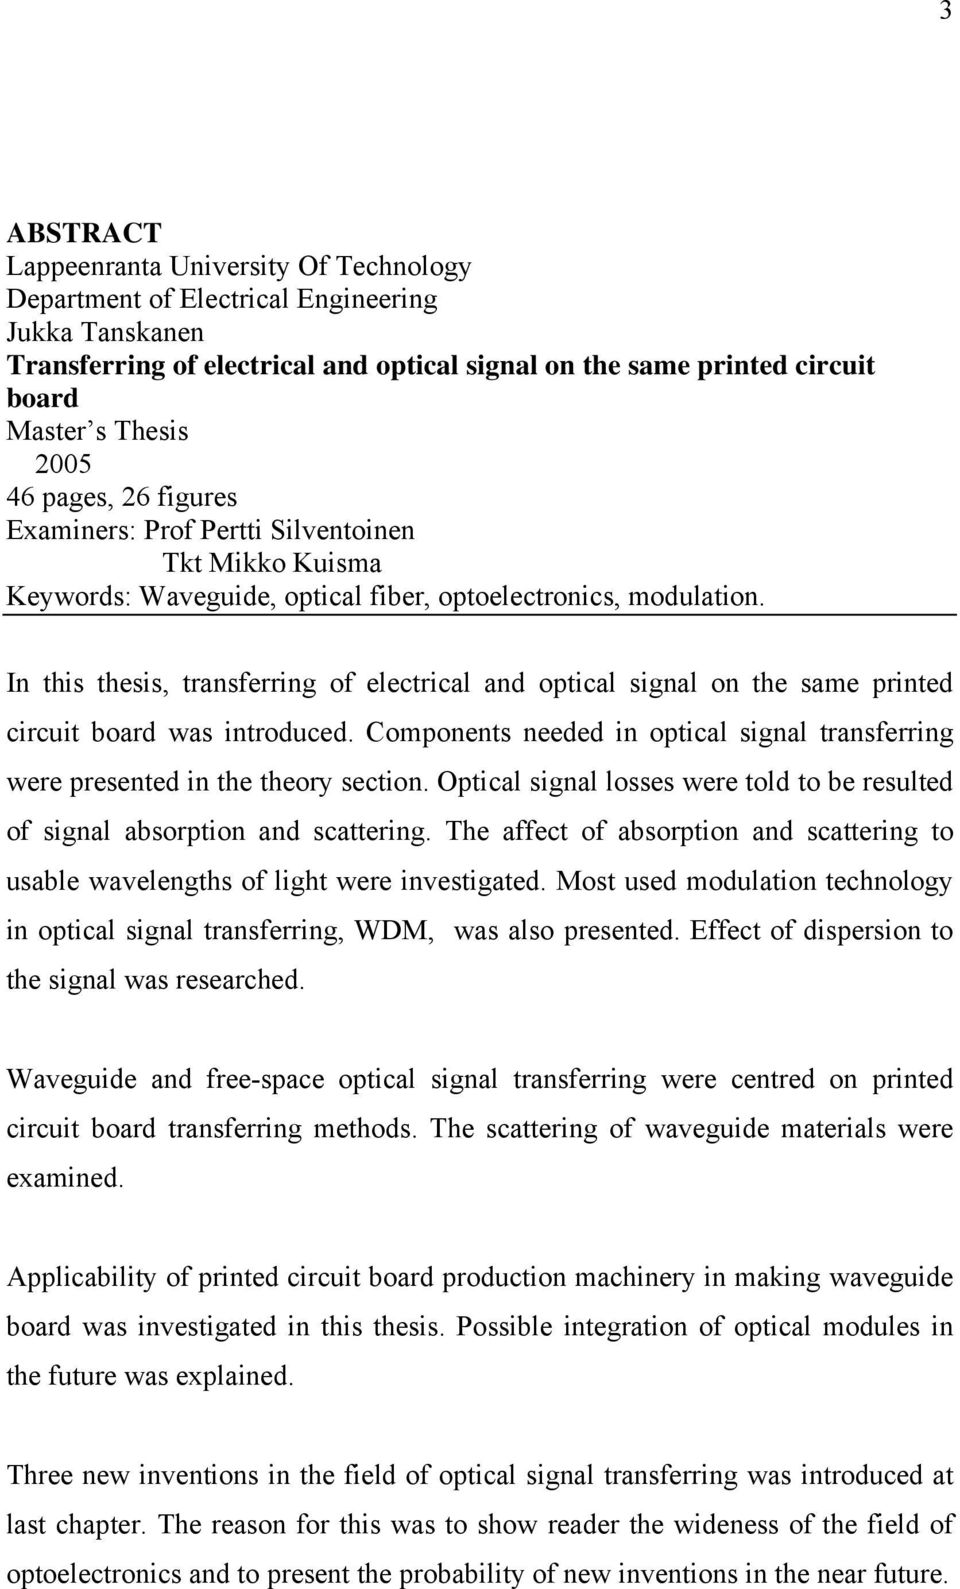 In this thesis, transferring of electrical and optical signal on the same printed circuit board was introduced. Components needed in optical signal transferring were presented in the theory section.